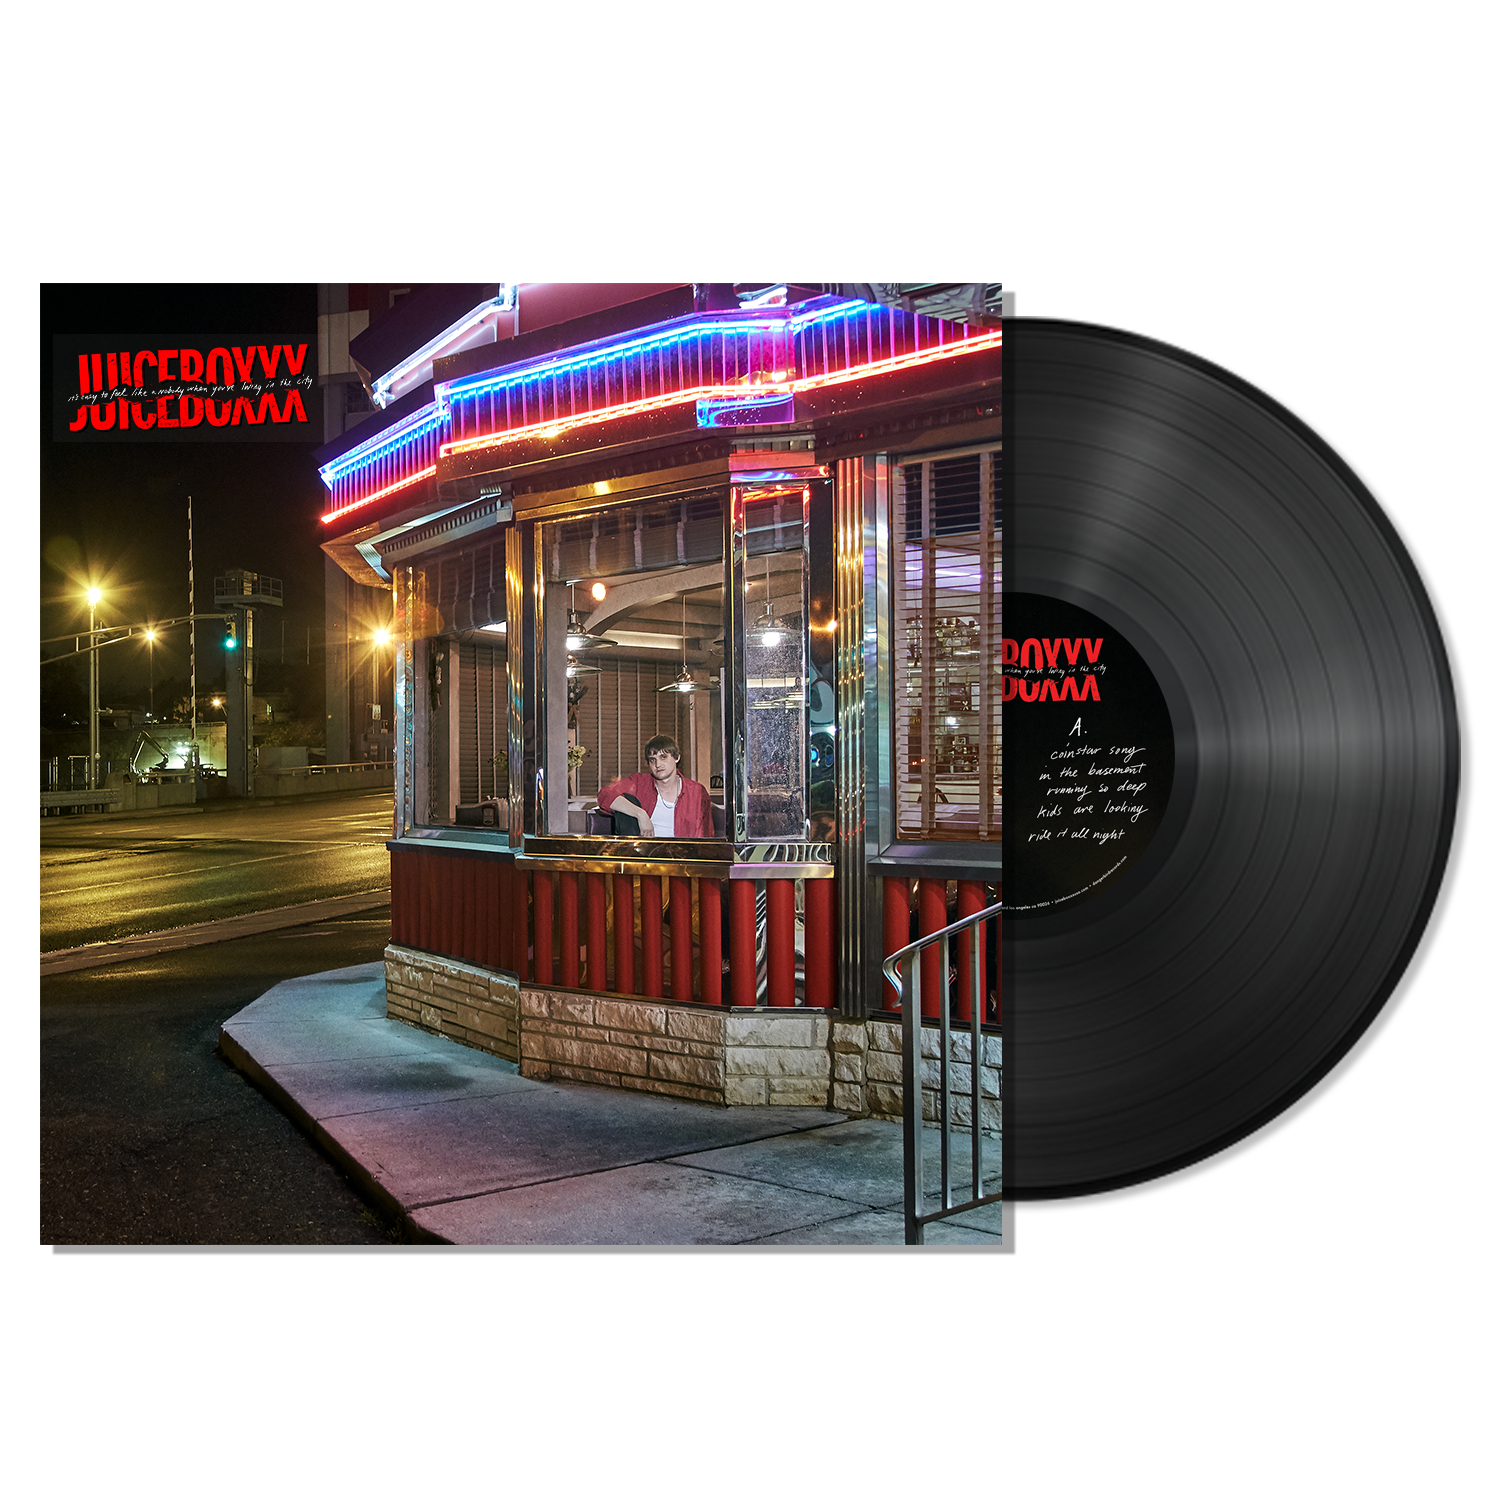 Juiceboxxx - It's Easy To Feel Like A Nobody When You're Living In The City - LP Bundle